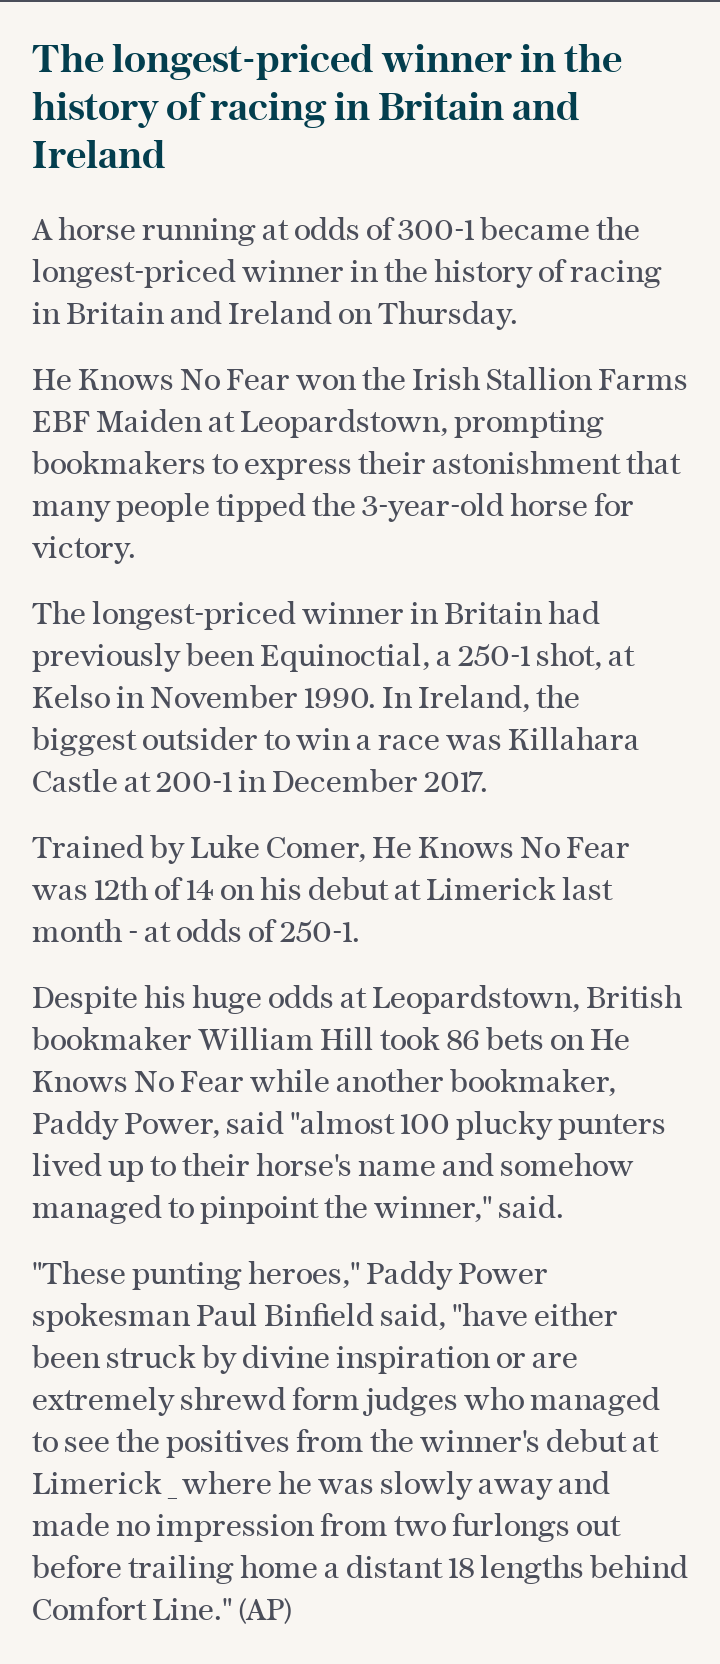 The longest-priced winner in the history of racing in Britain and Ireland